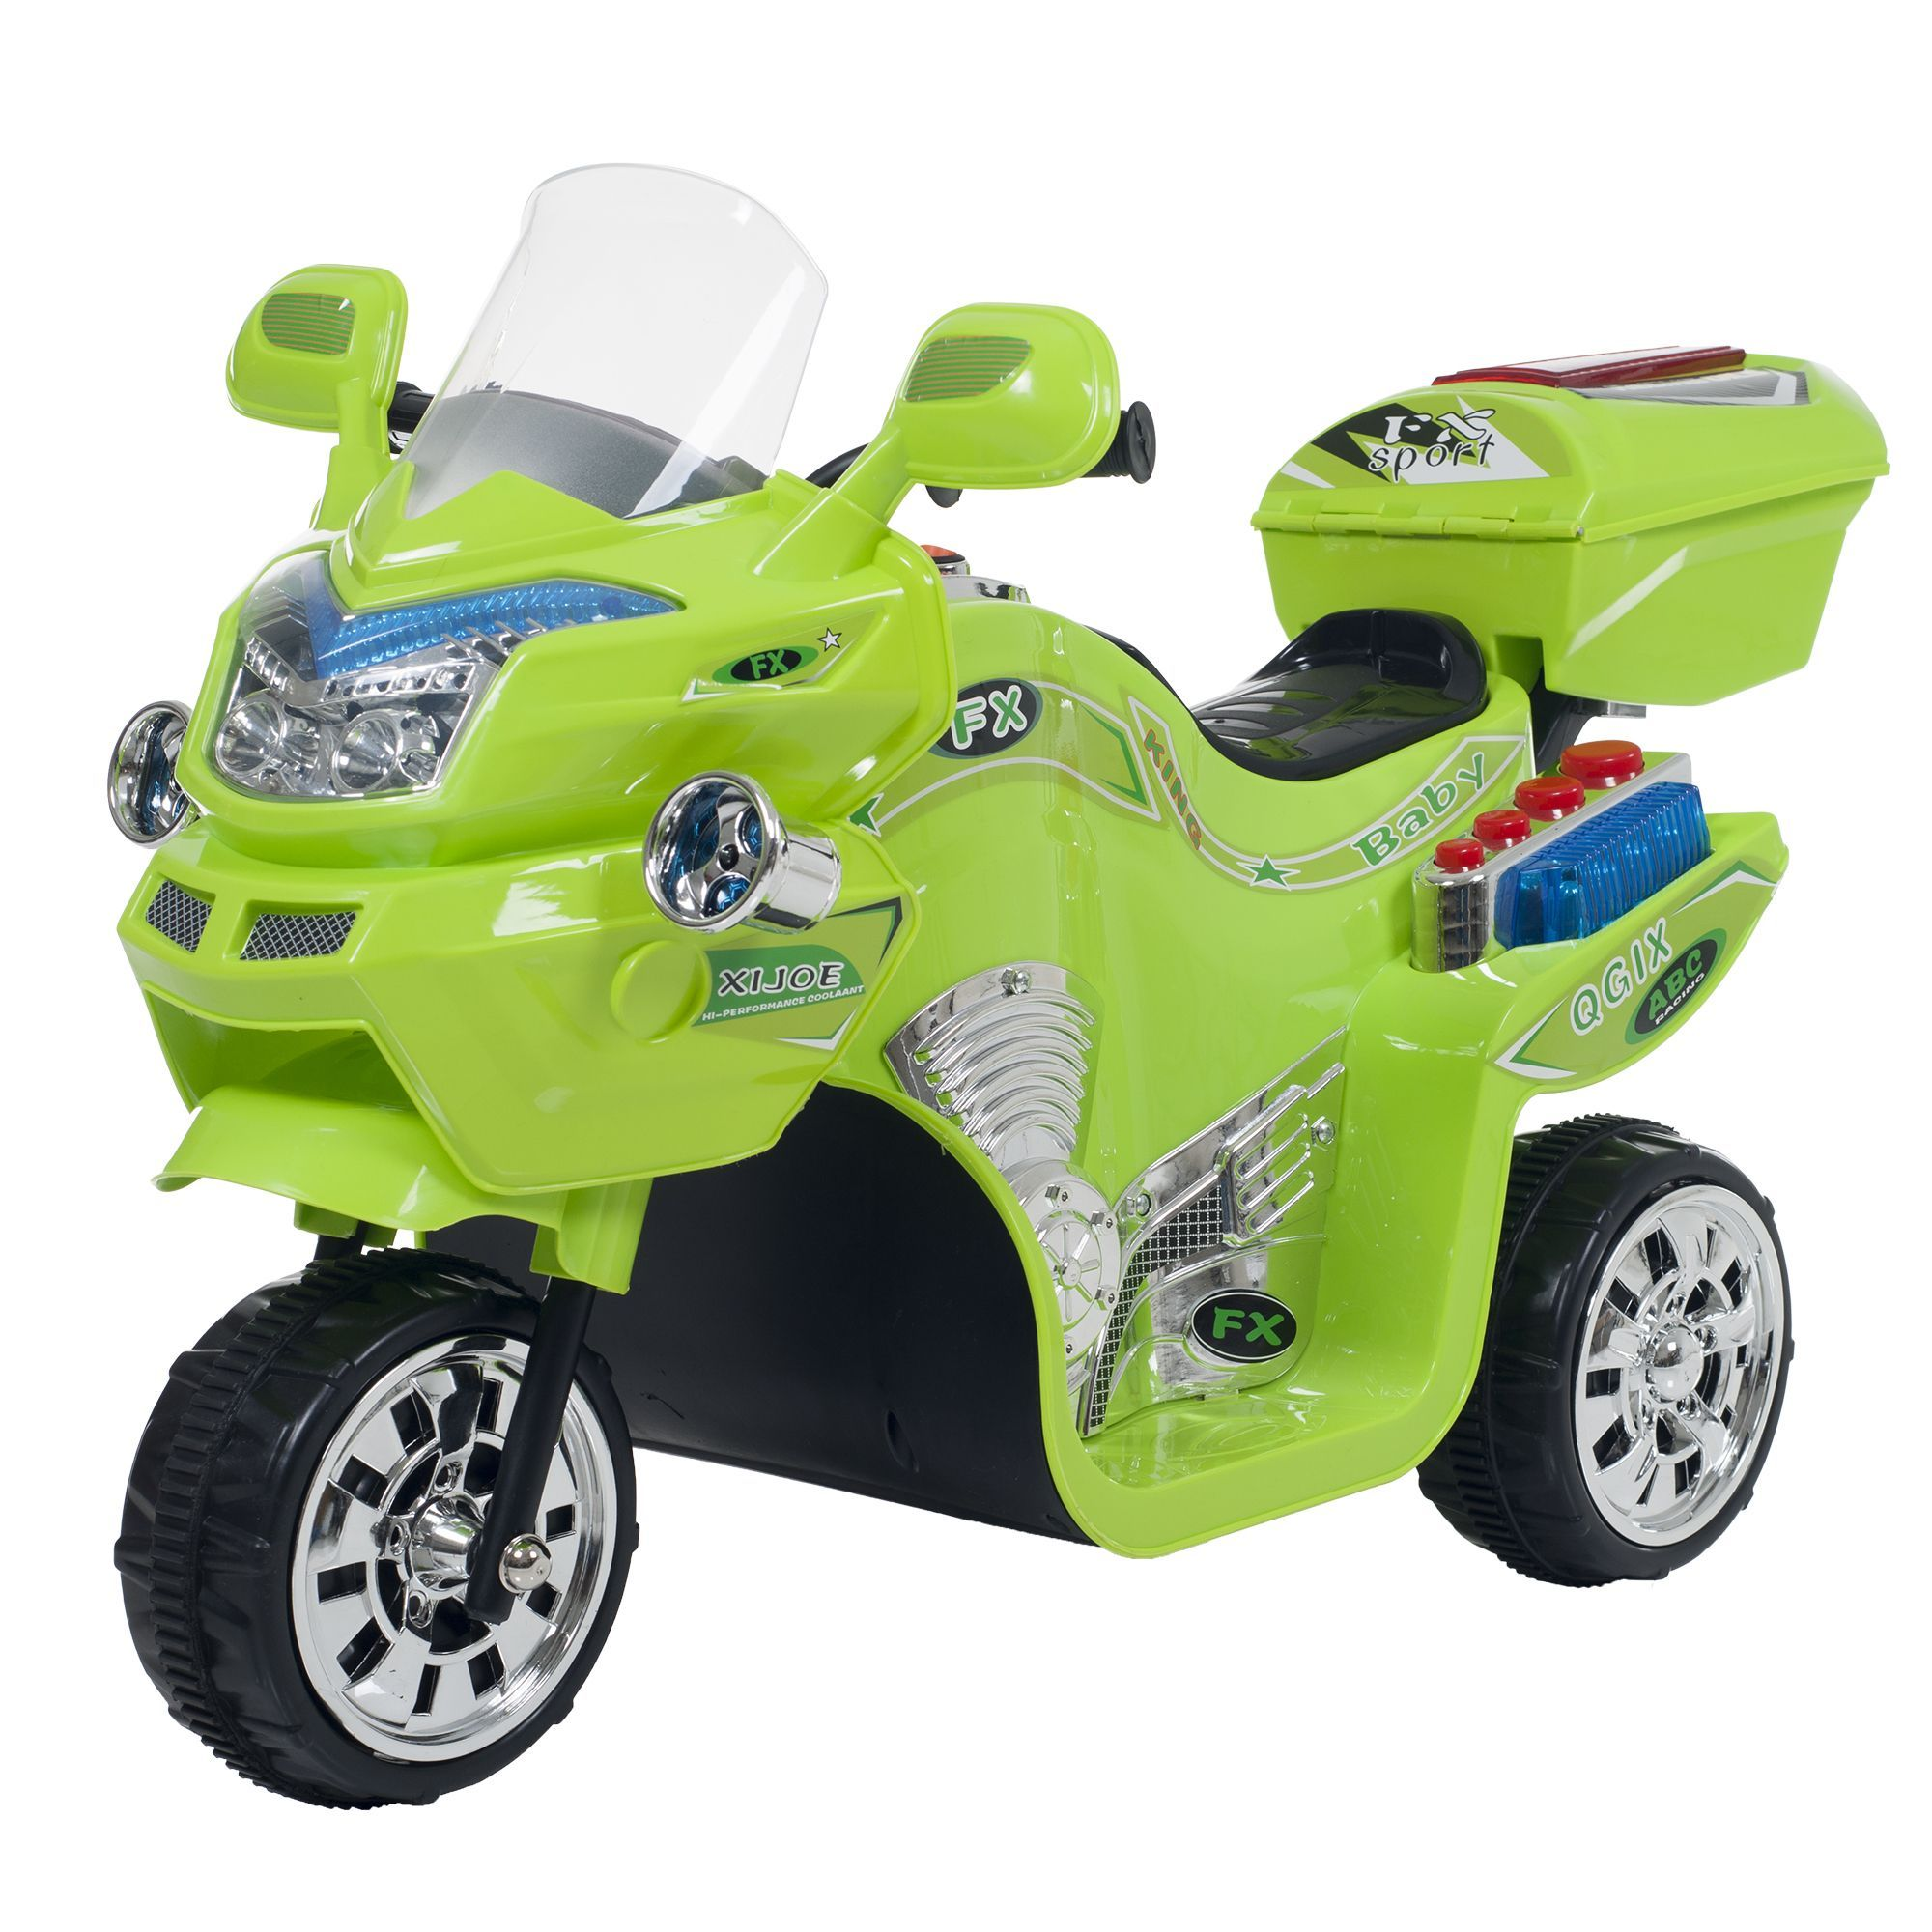 Trademark Lil Rider 3 Wheel Fx Battery Operated Motorcycle